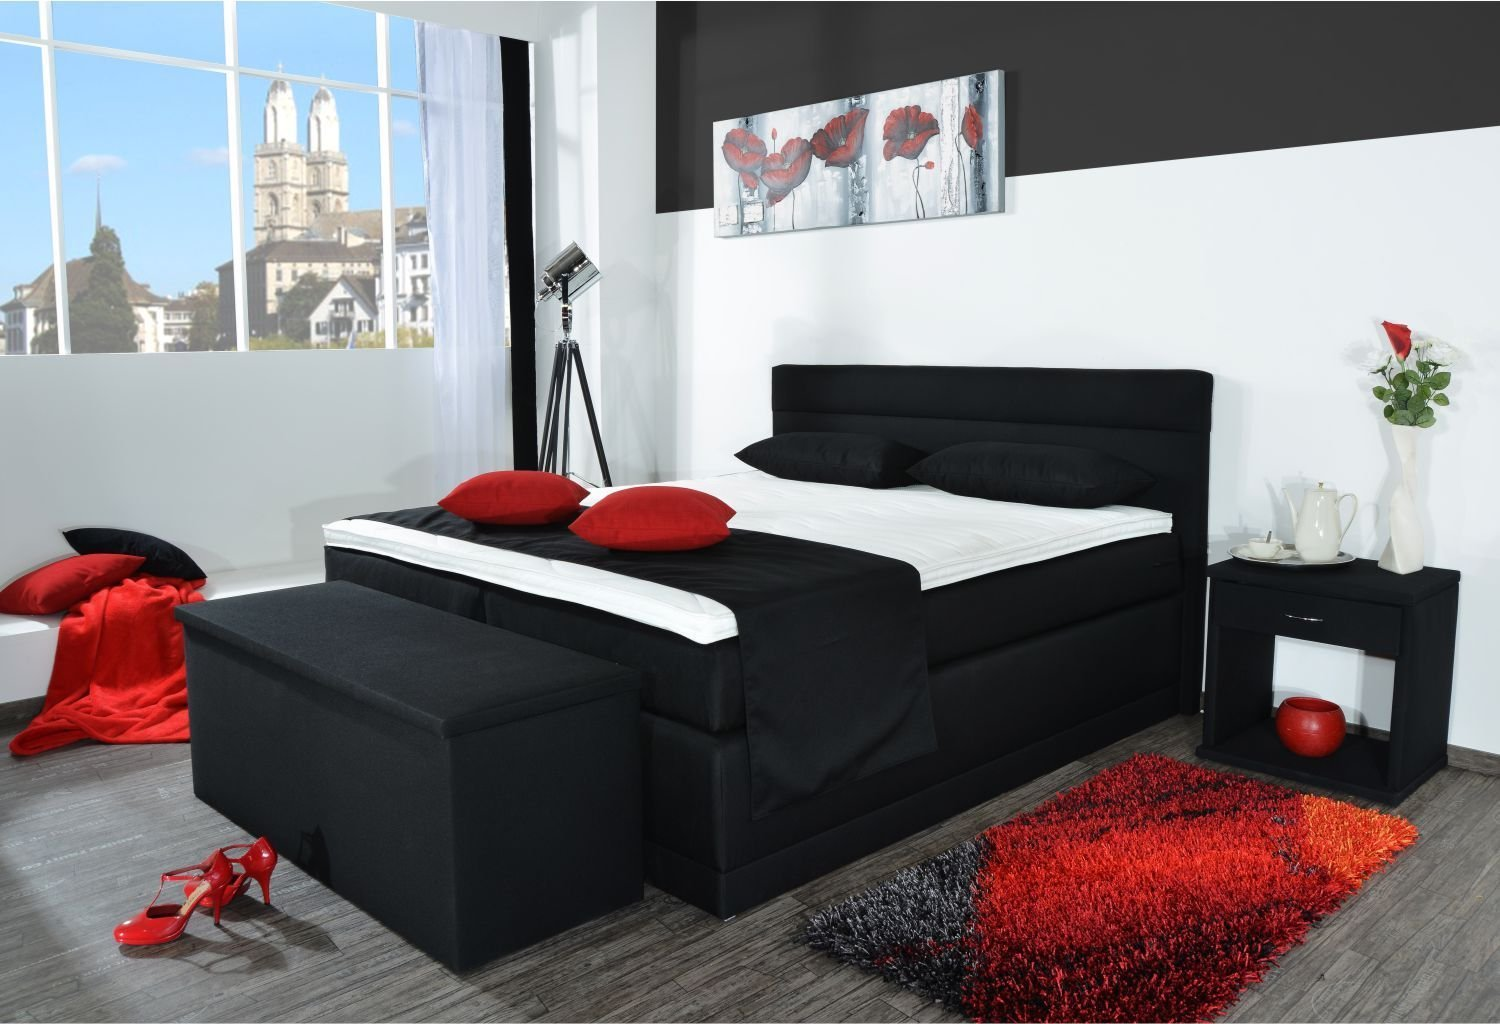 boxspringbett bali bt auch mit bettkasten oder elektrisch erh ltlich 80x200cm 90x200cm. Black Bedroom Furniture Sets. Home Design Ideas